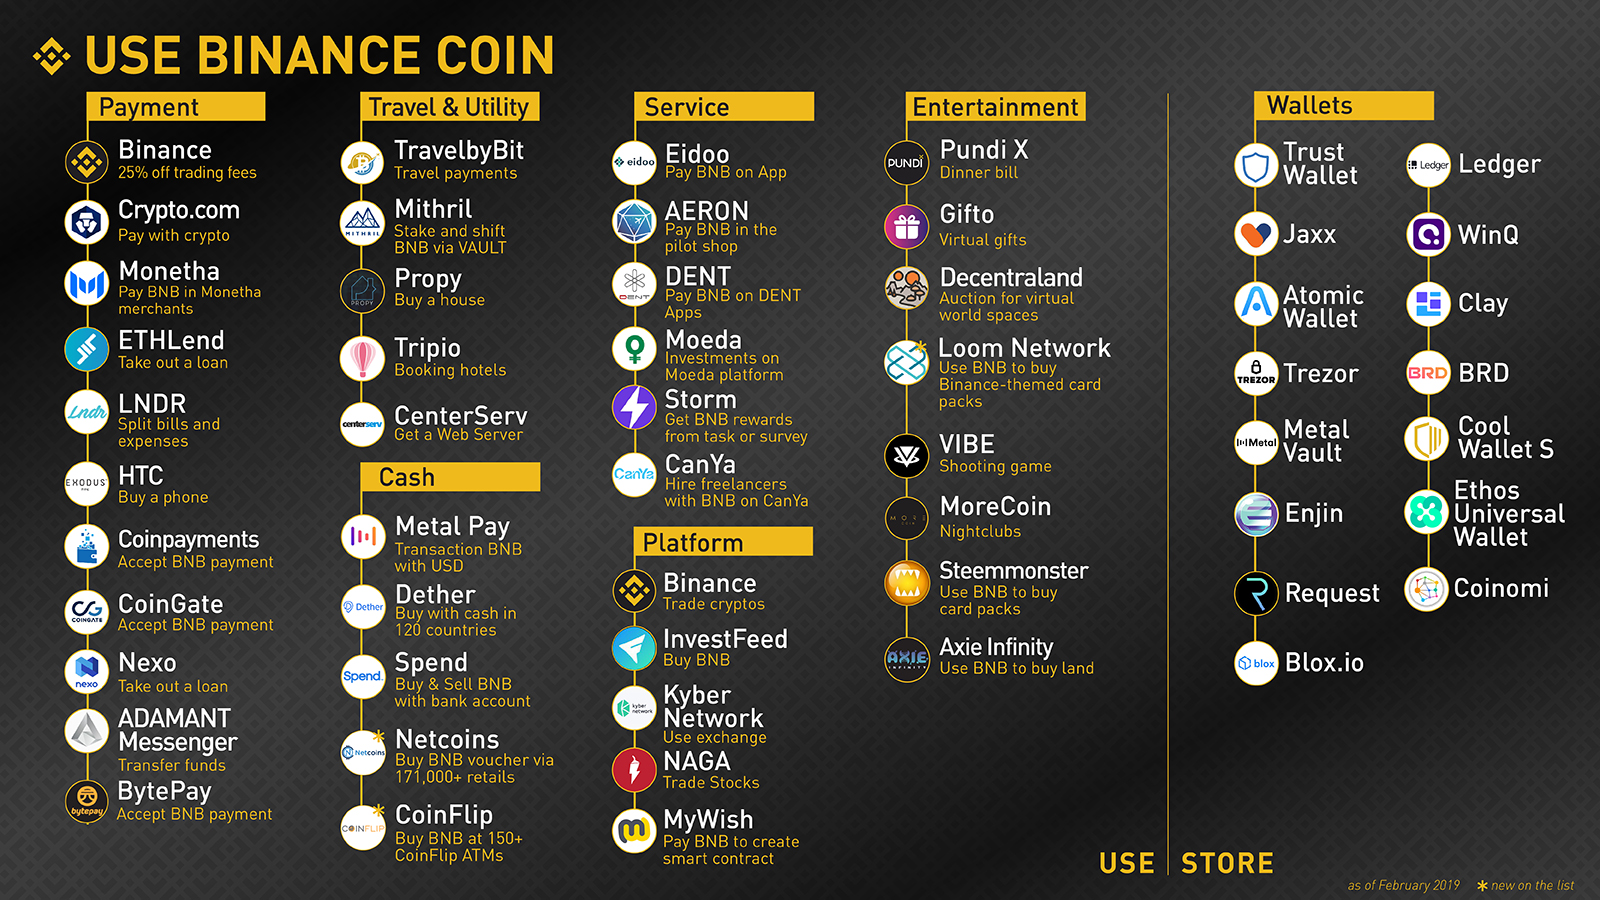 The ever-expanding world of #UseBNB - March 2019 | Binance Blog